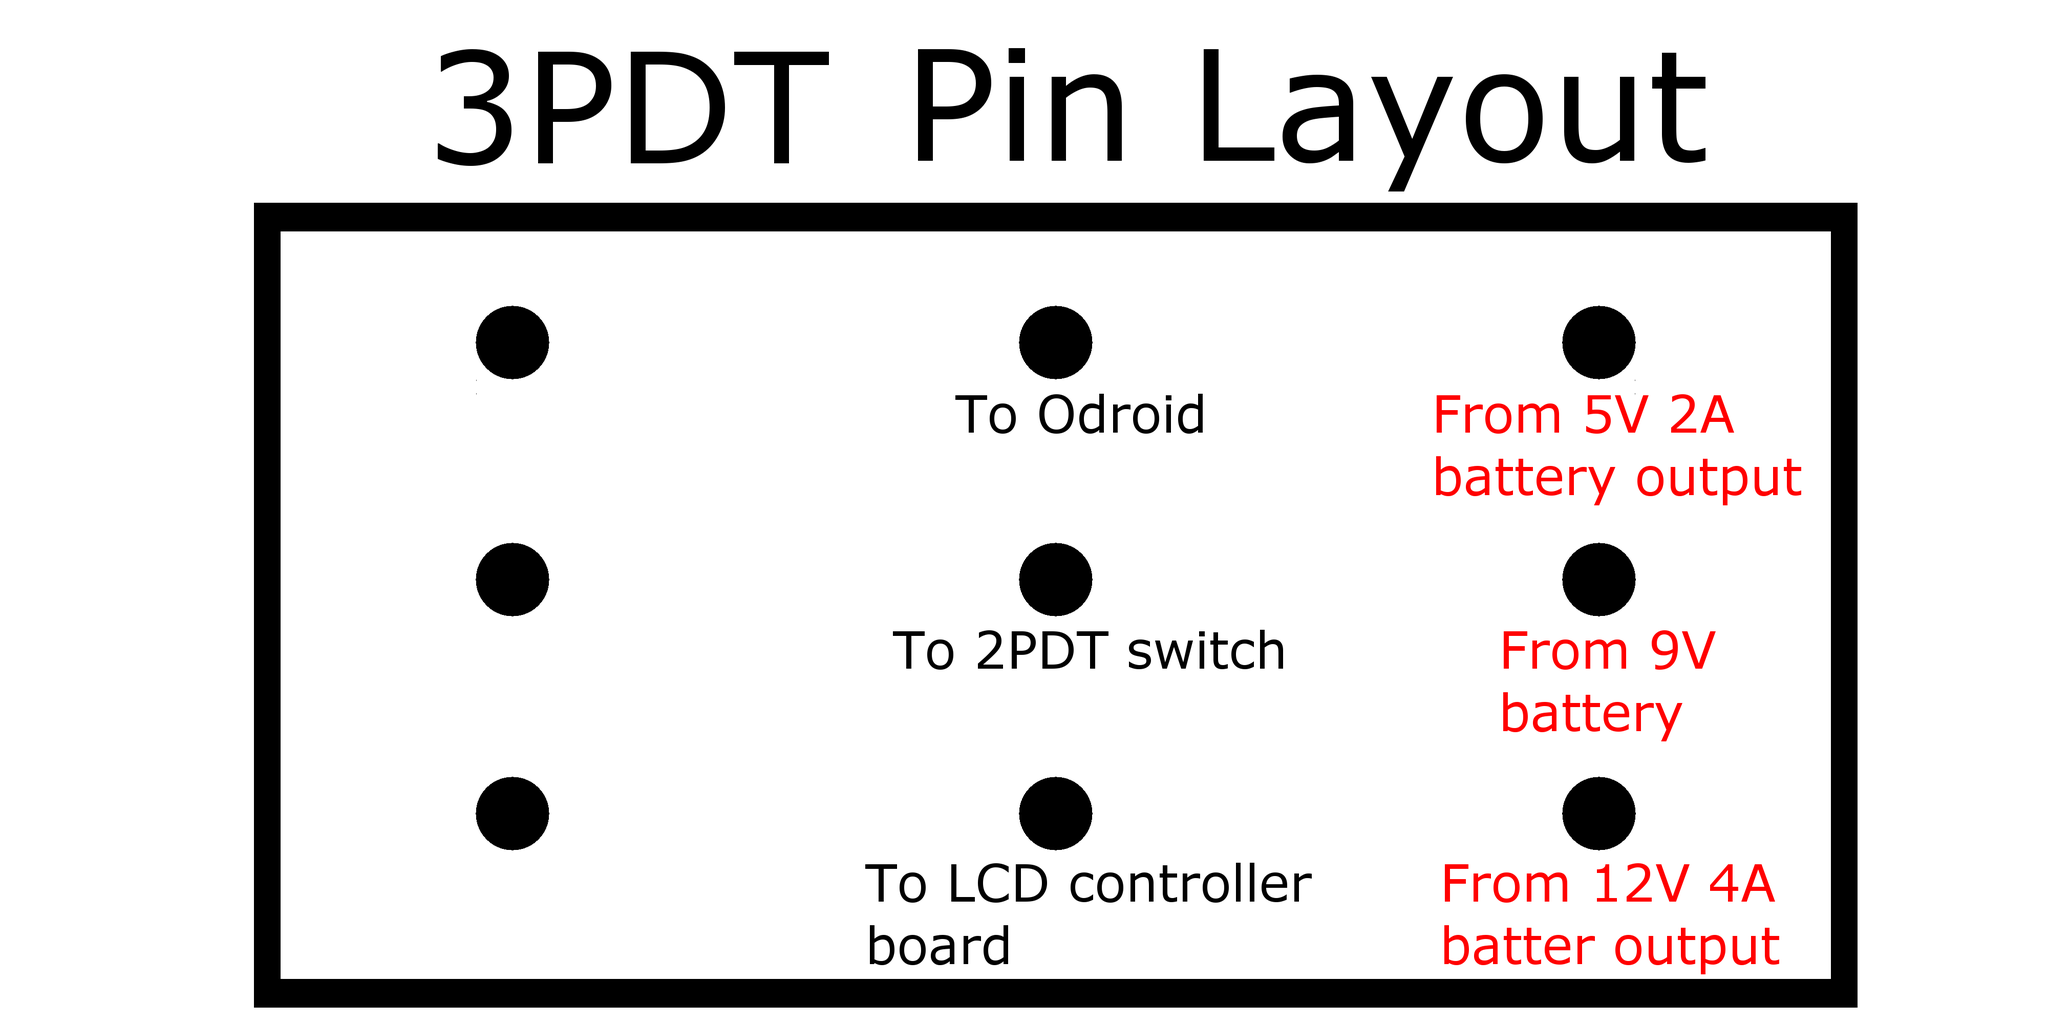 Wiring and Power (Soldering 3PDT Switch)